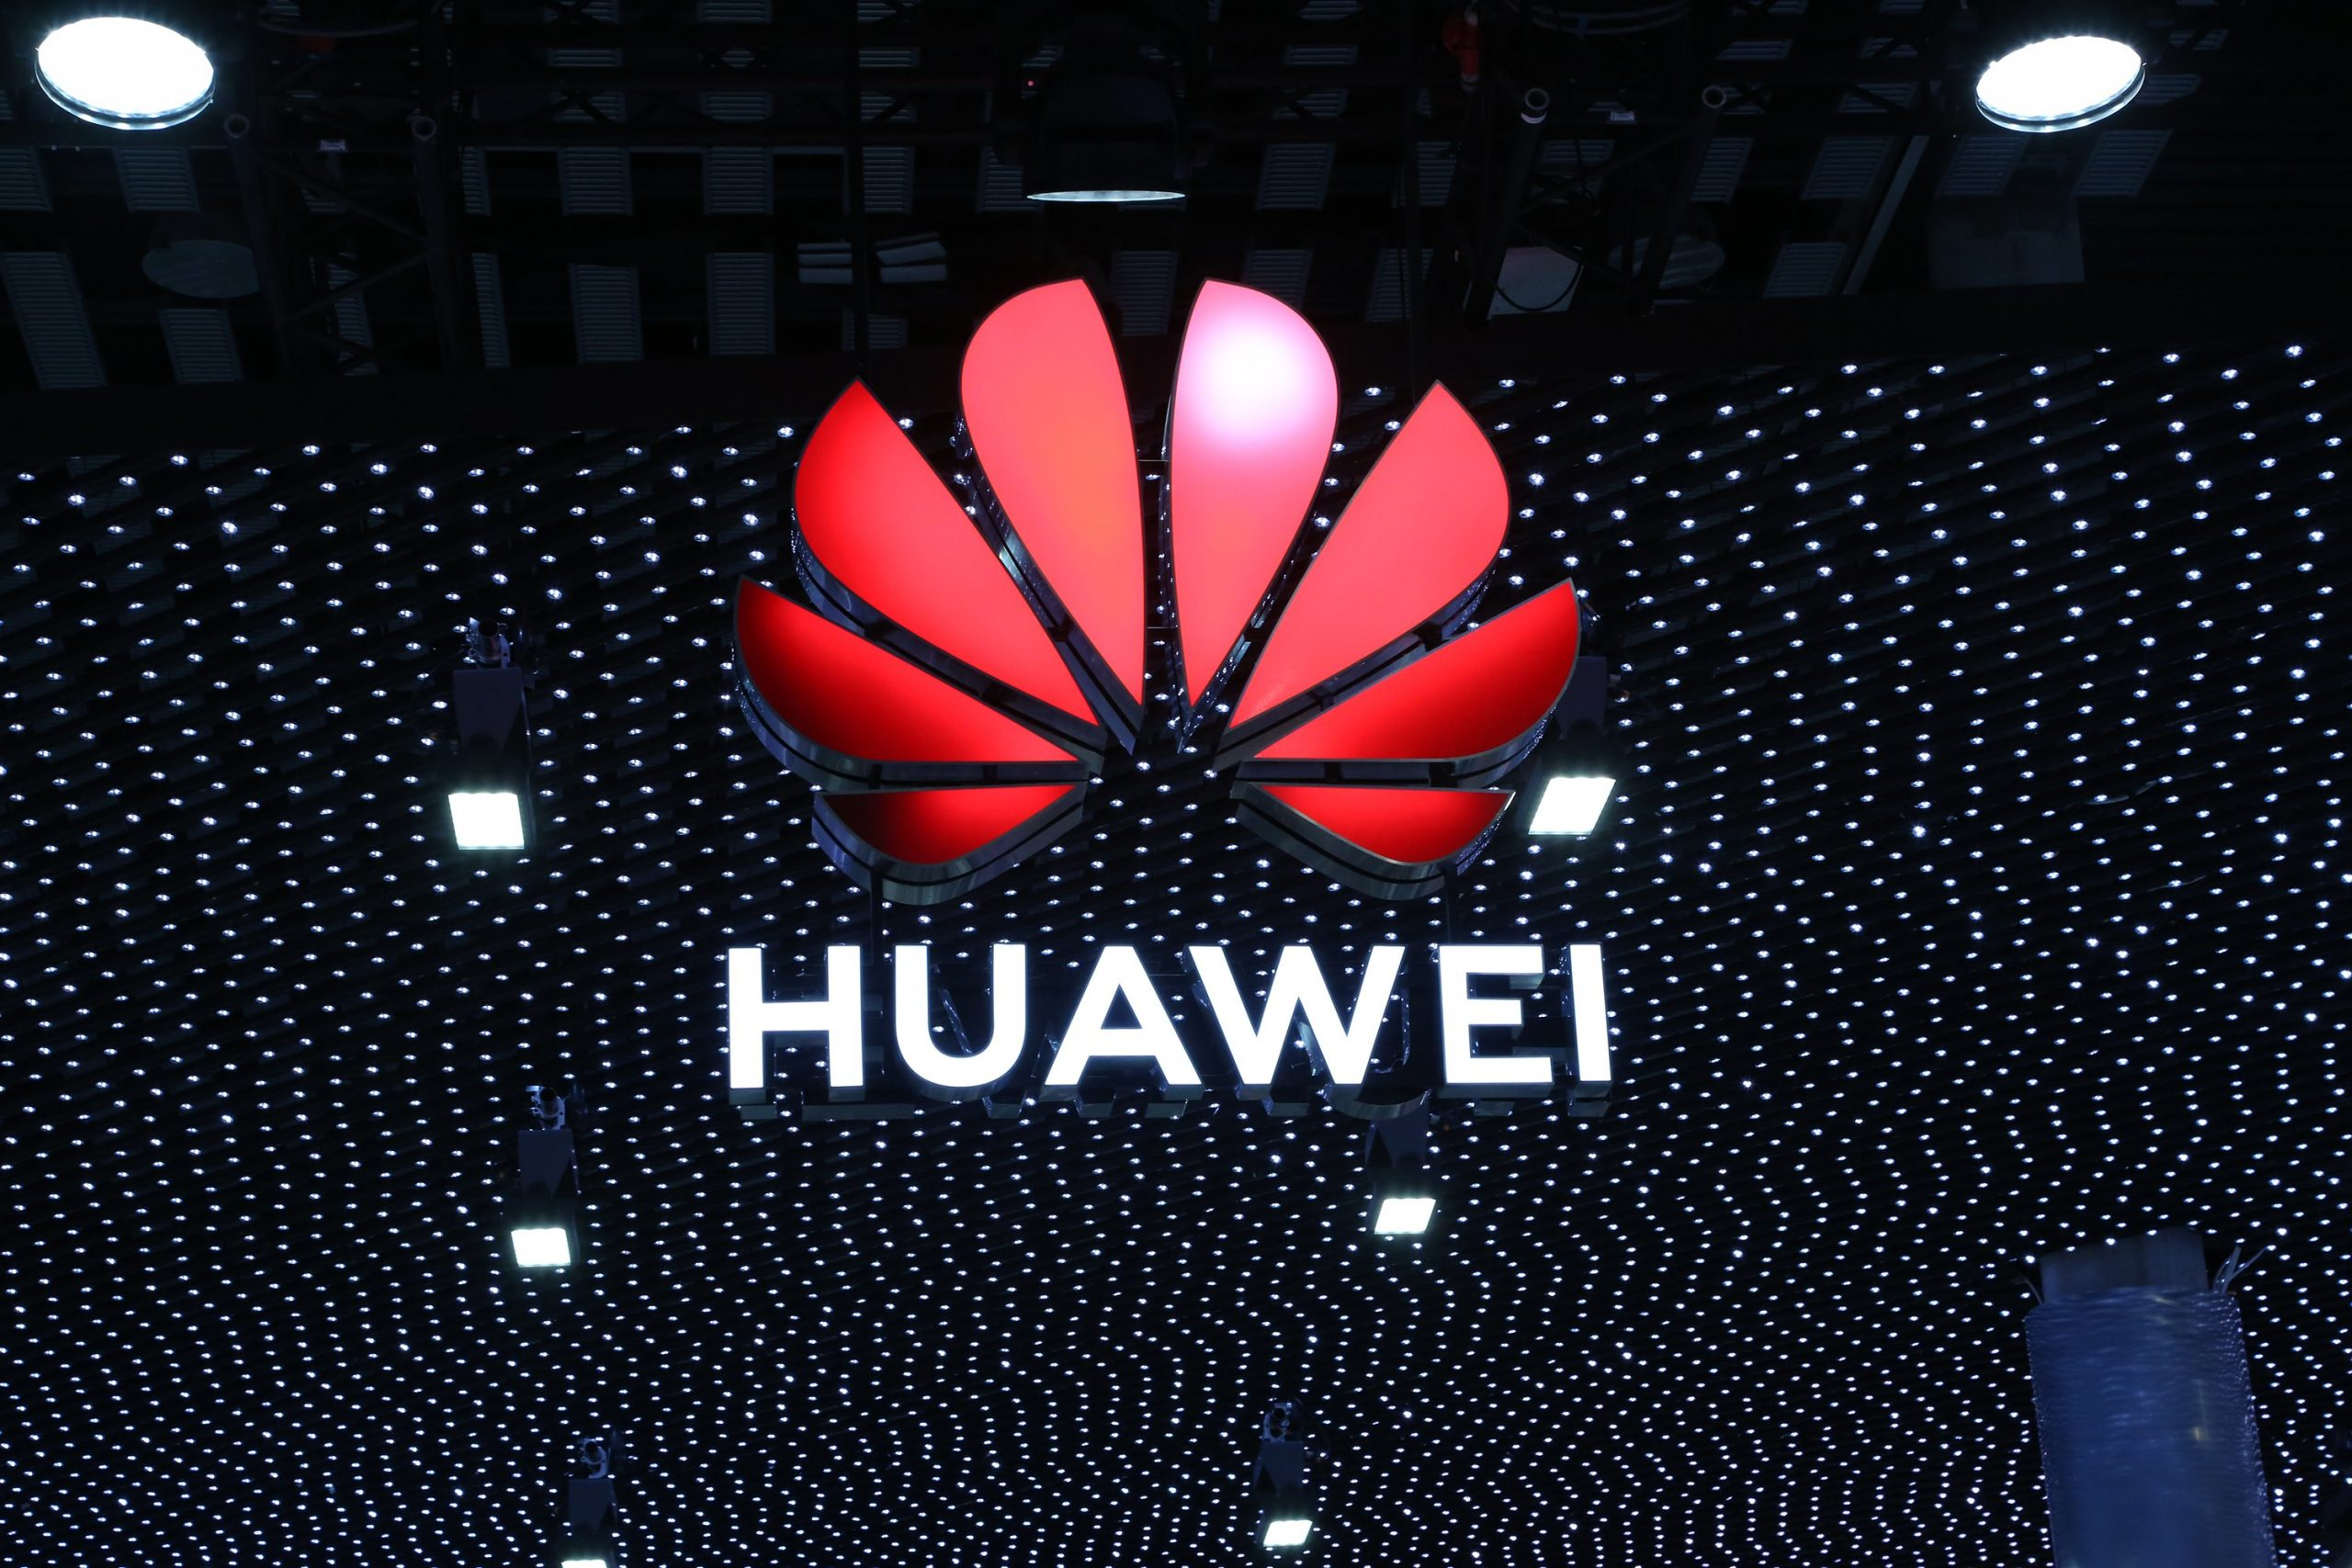 Huawei leads Chinese smartphone market in Q3 2020, reveals CINNO Research